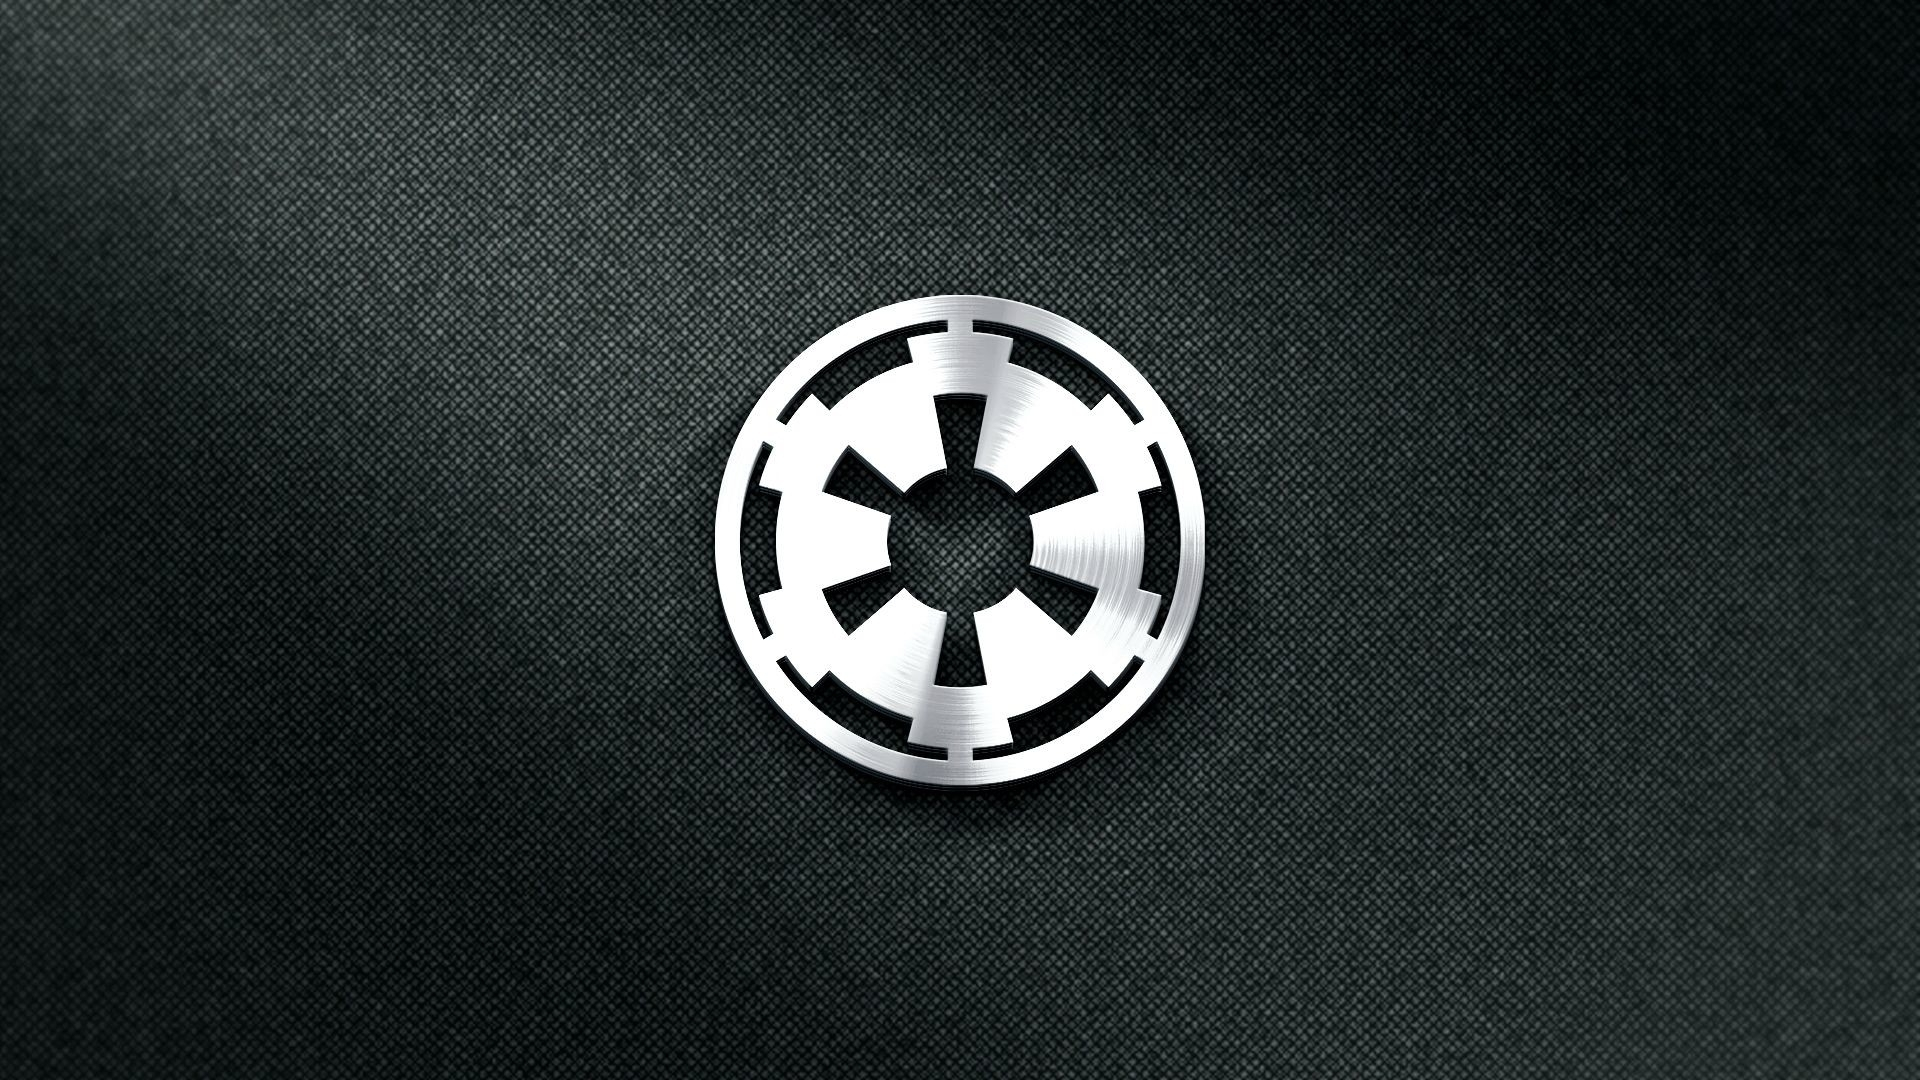 star wars imperial wallpaper hd (76+ images)